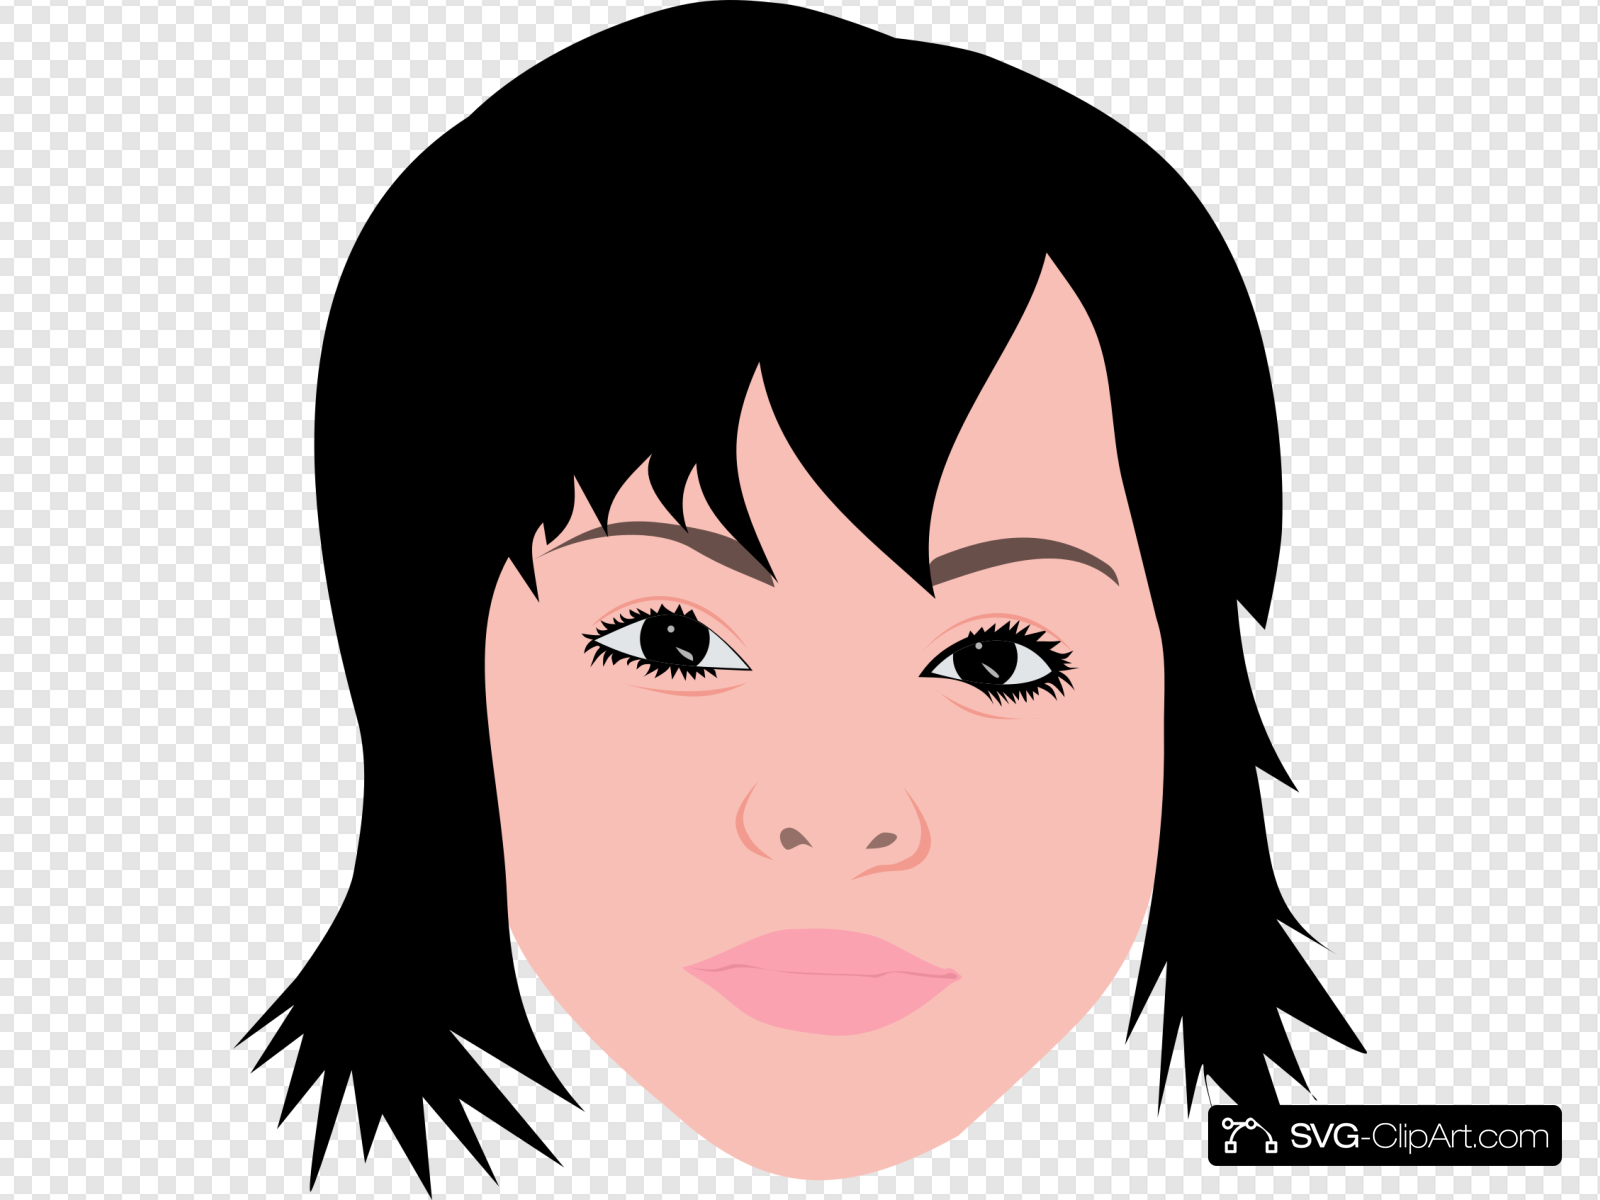 Asian Girl With Short Hair Clip art, Icon and SVG.